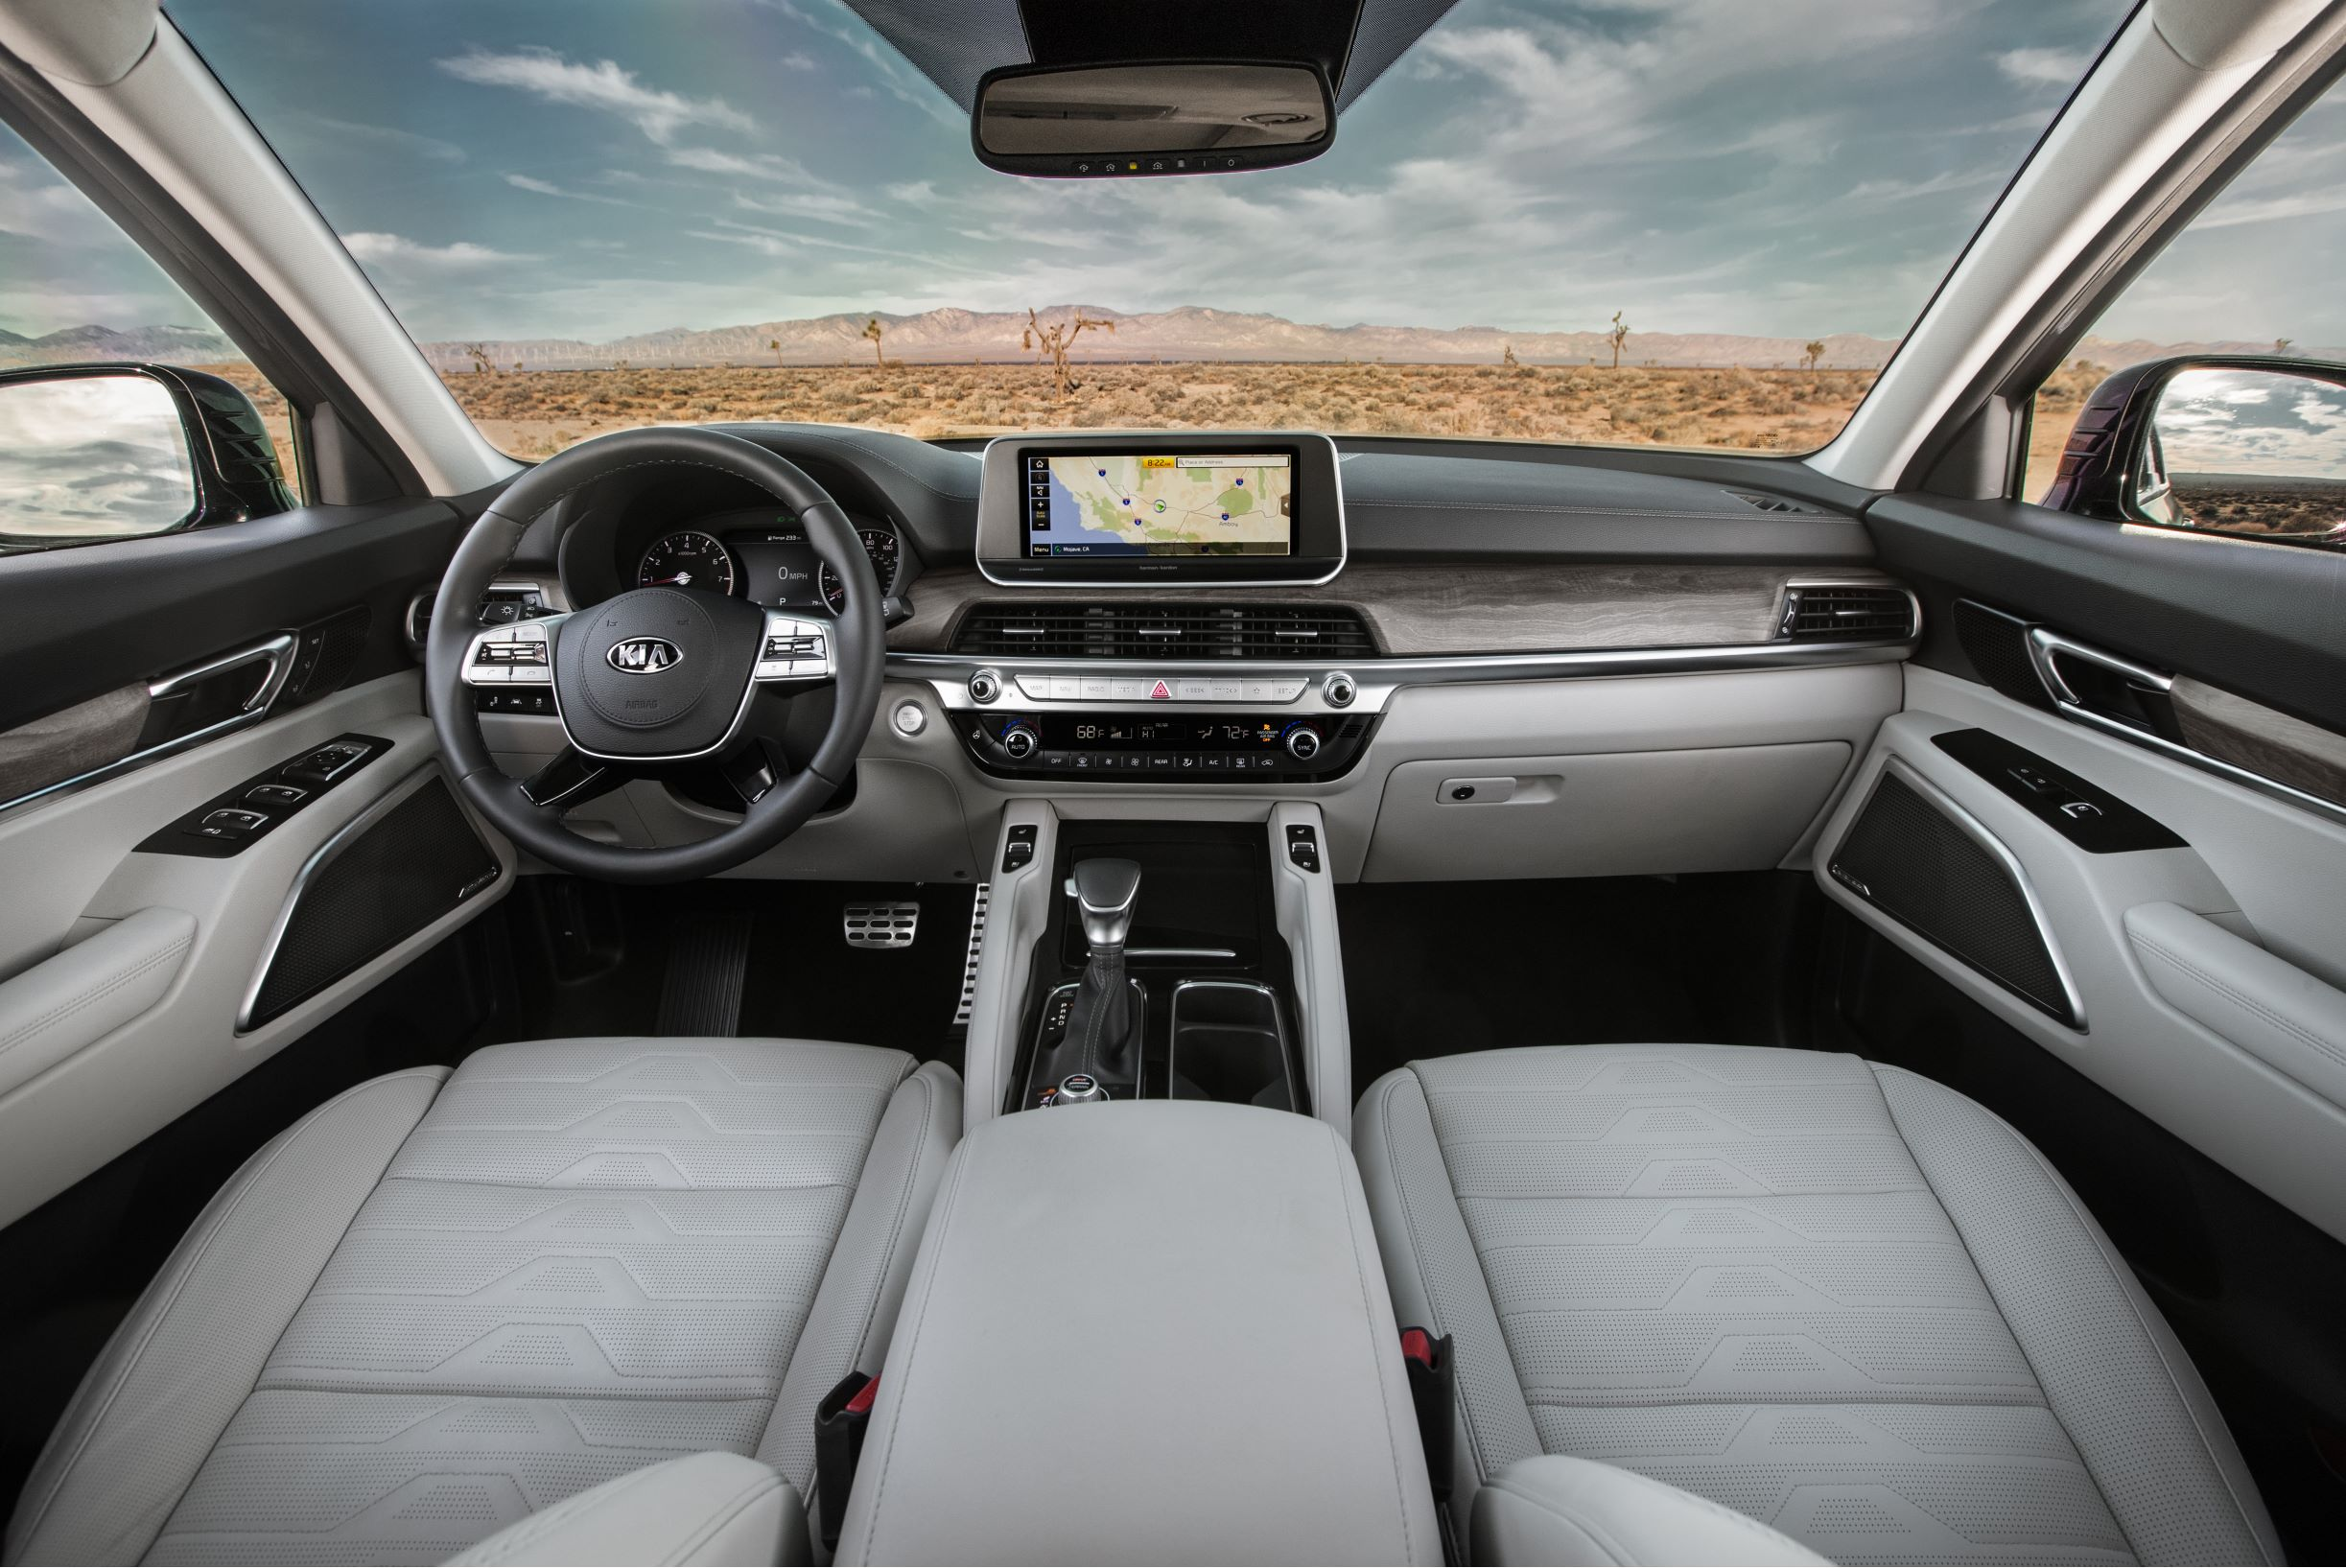 Inside the Kia Telluride cabin with a view of the dash display navigation